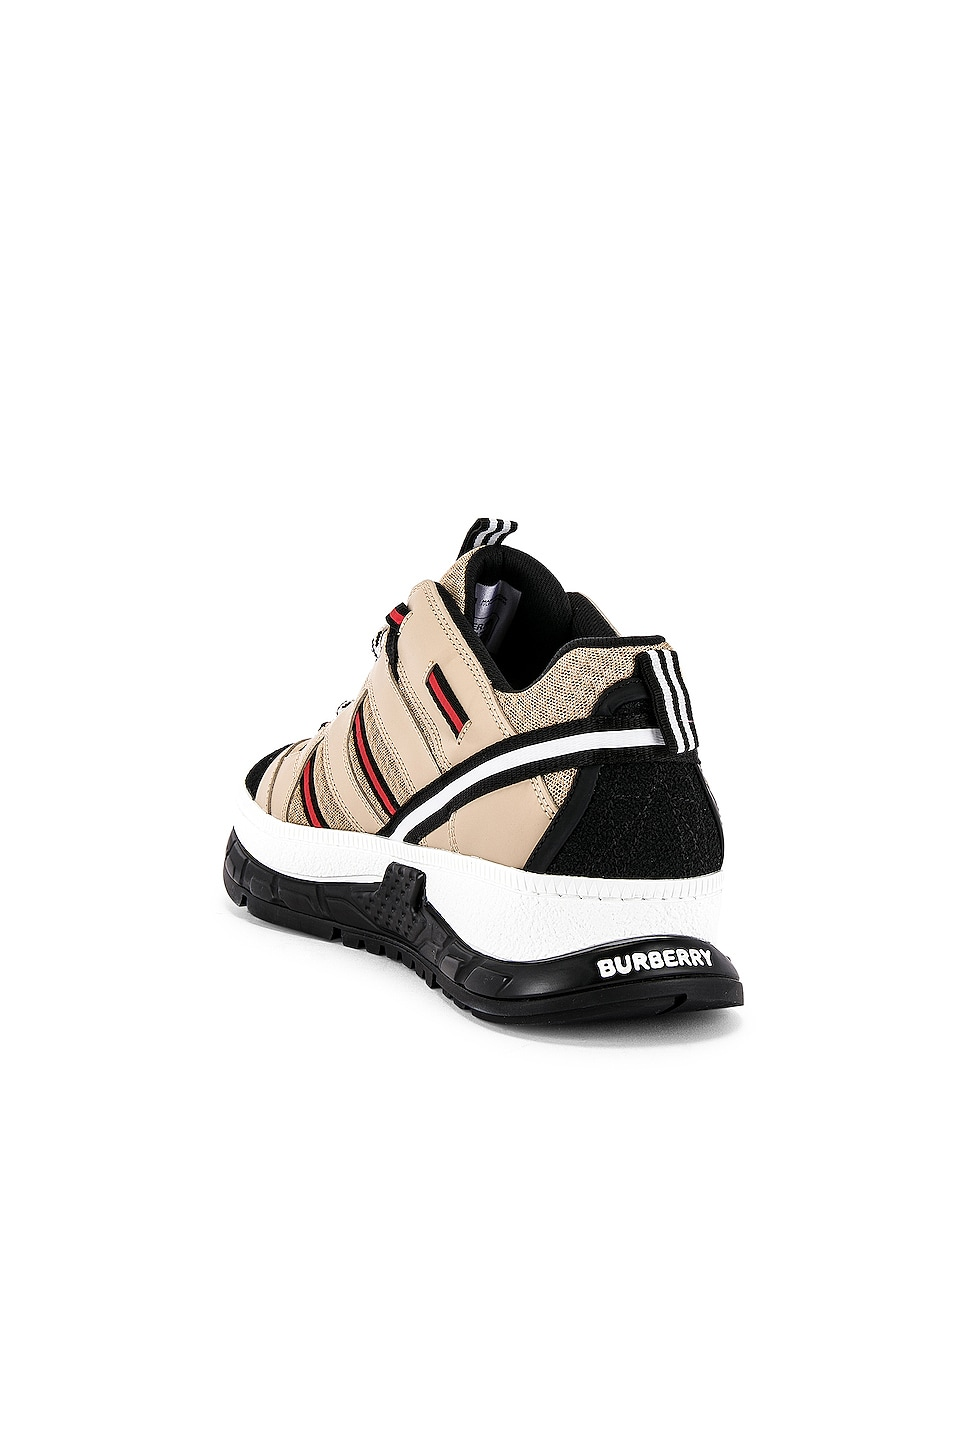 Image 3 of Burberry Union Sneaker in Beige